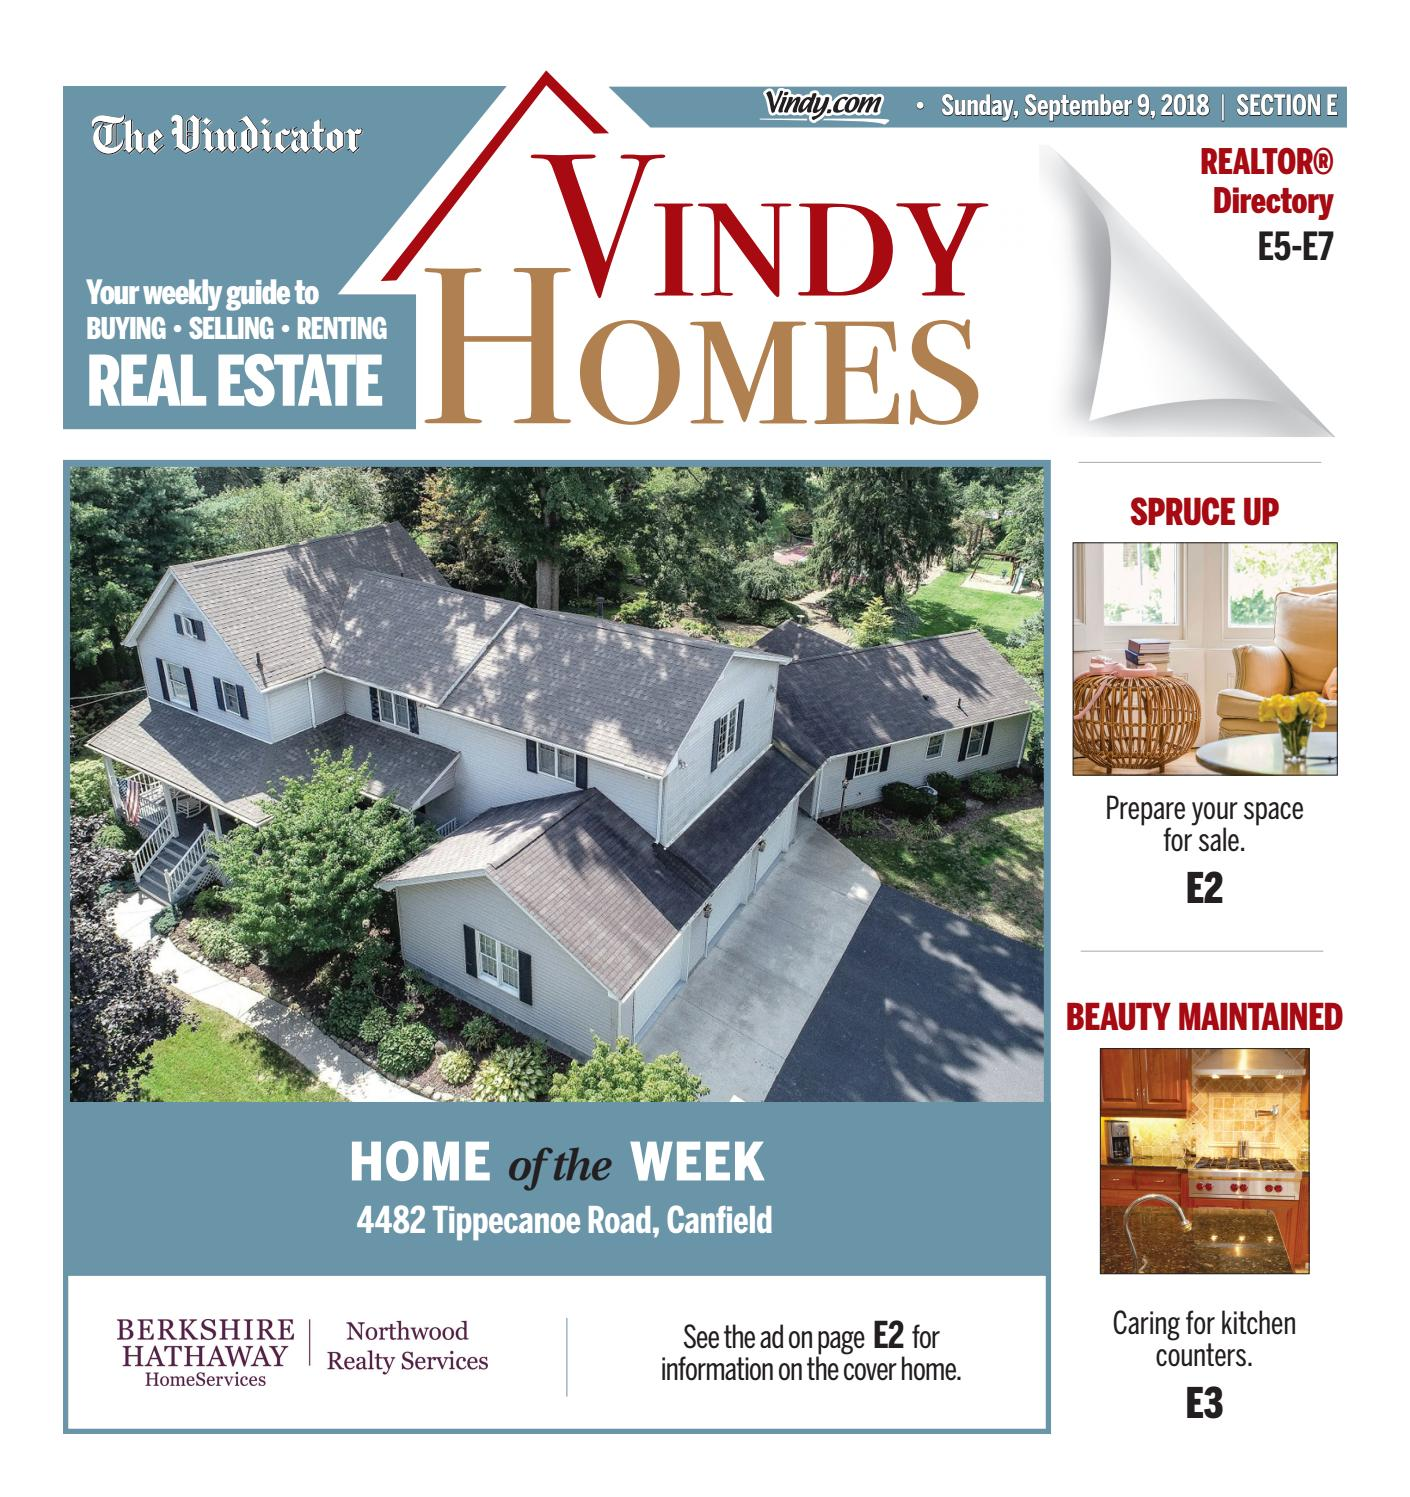 Vindy Homes 9-9-2018 by The Vindicator - issuu